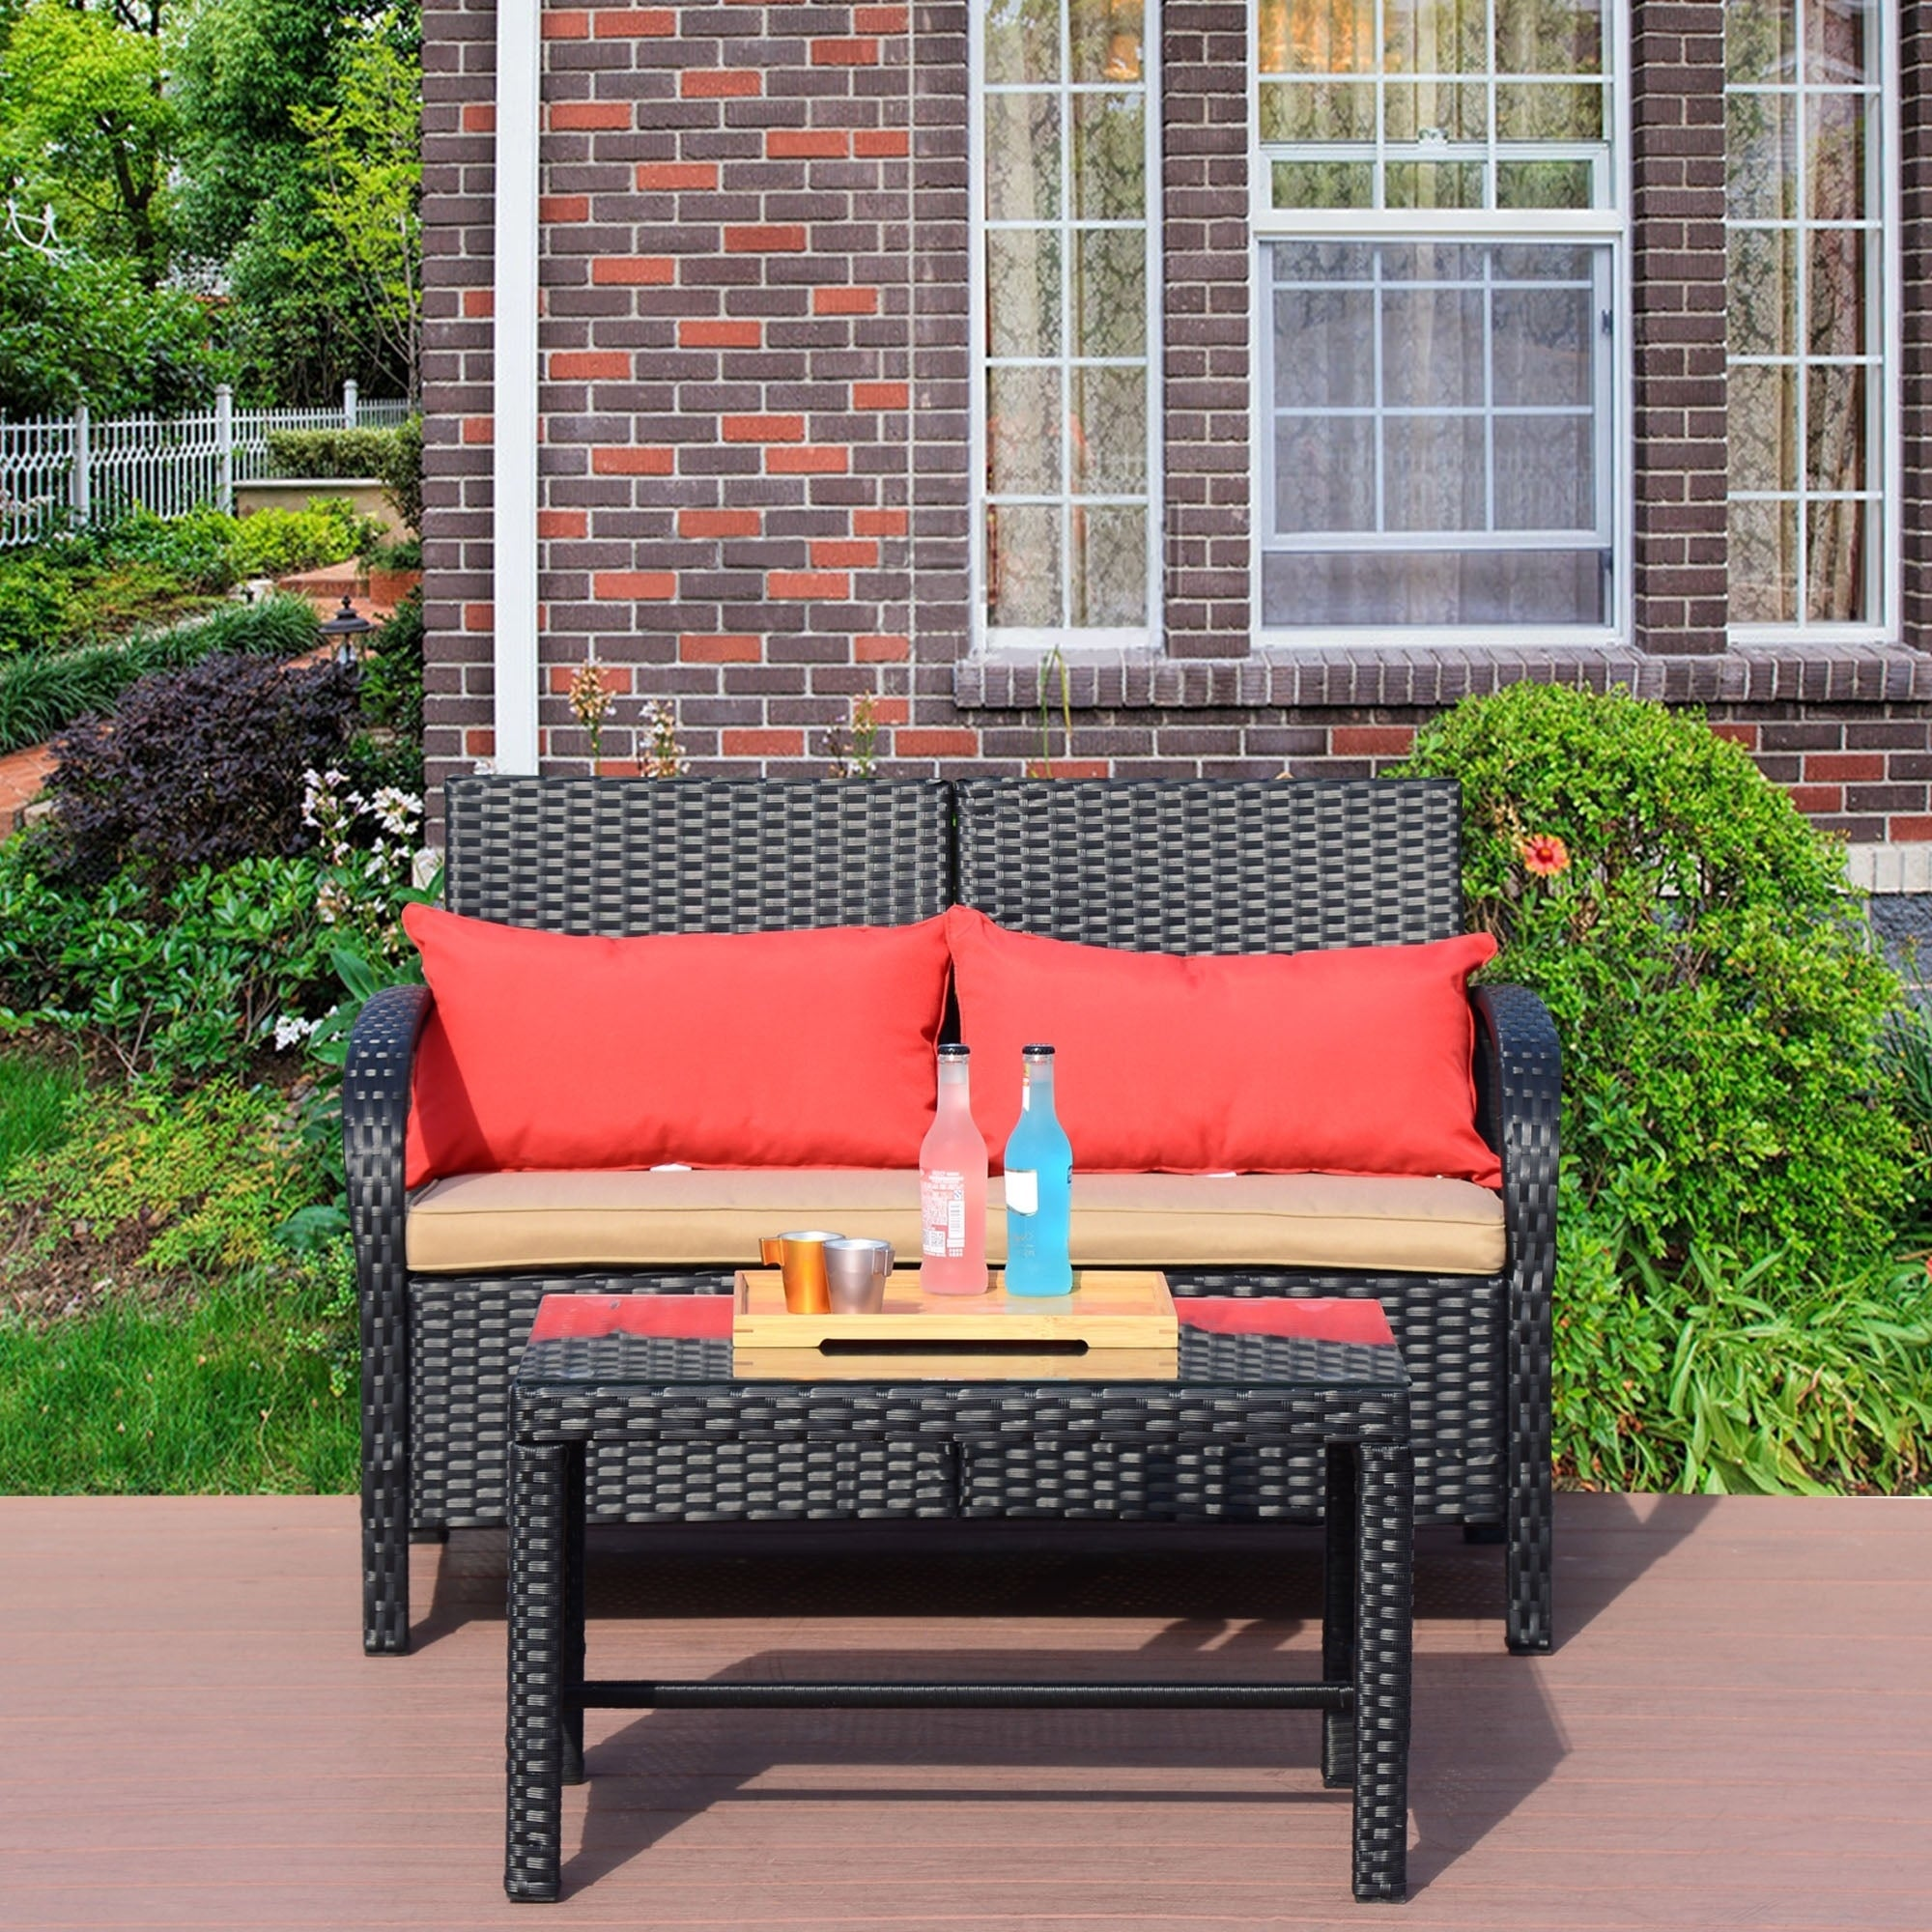 2 PC Rattan Loveseat Sofa Furniture Bistro Set Outdoor Wicker Patio Garden Loveseat, Black Rattan with Khaki Cushions (Backed/Cushion Included -